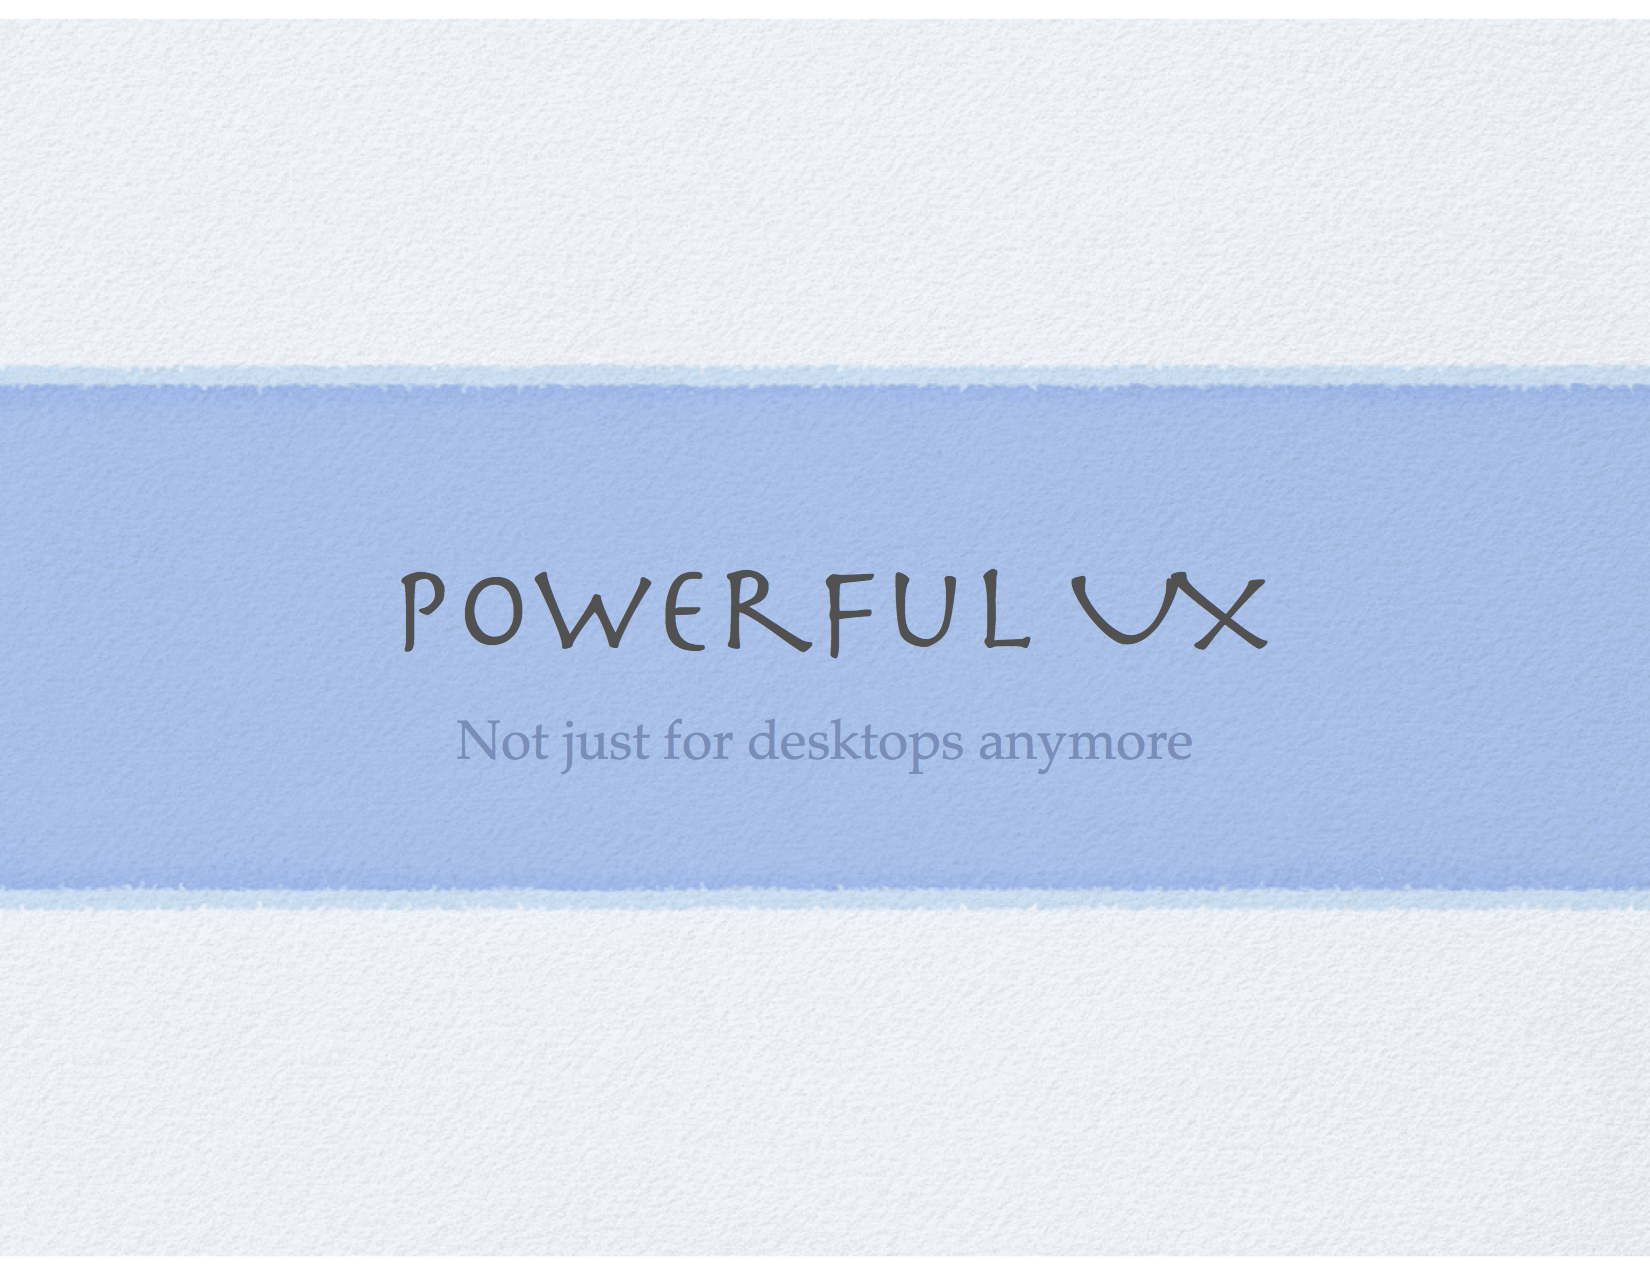 Powerful UX, not just for desktops anymore